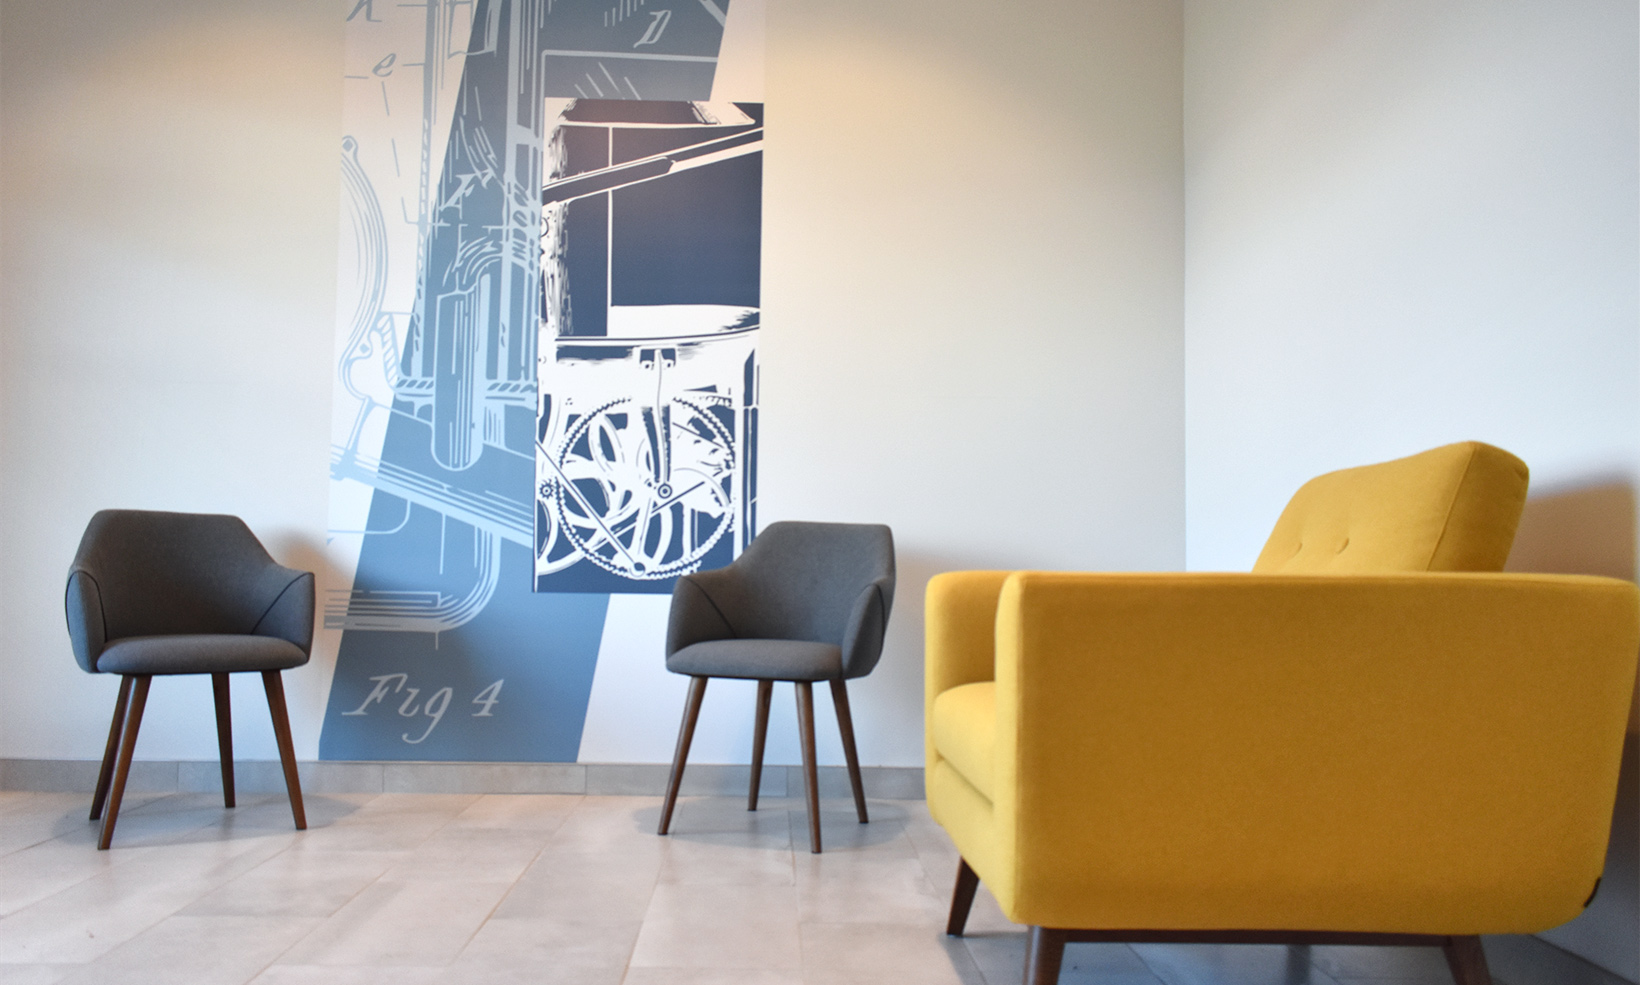 The interior design and wall graphics at The Forge on Broadway work within the brand's color palette to create an engaging space